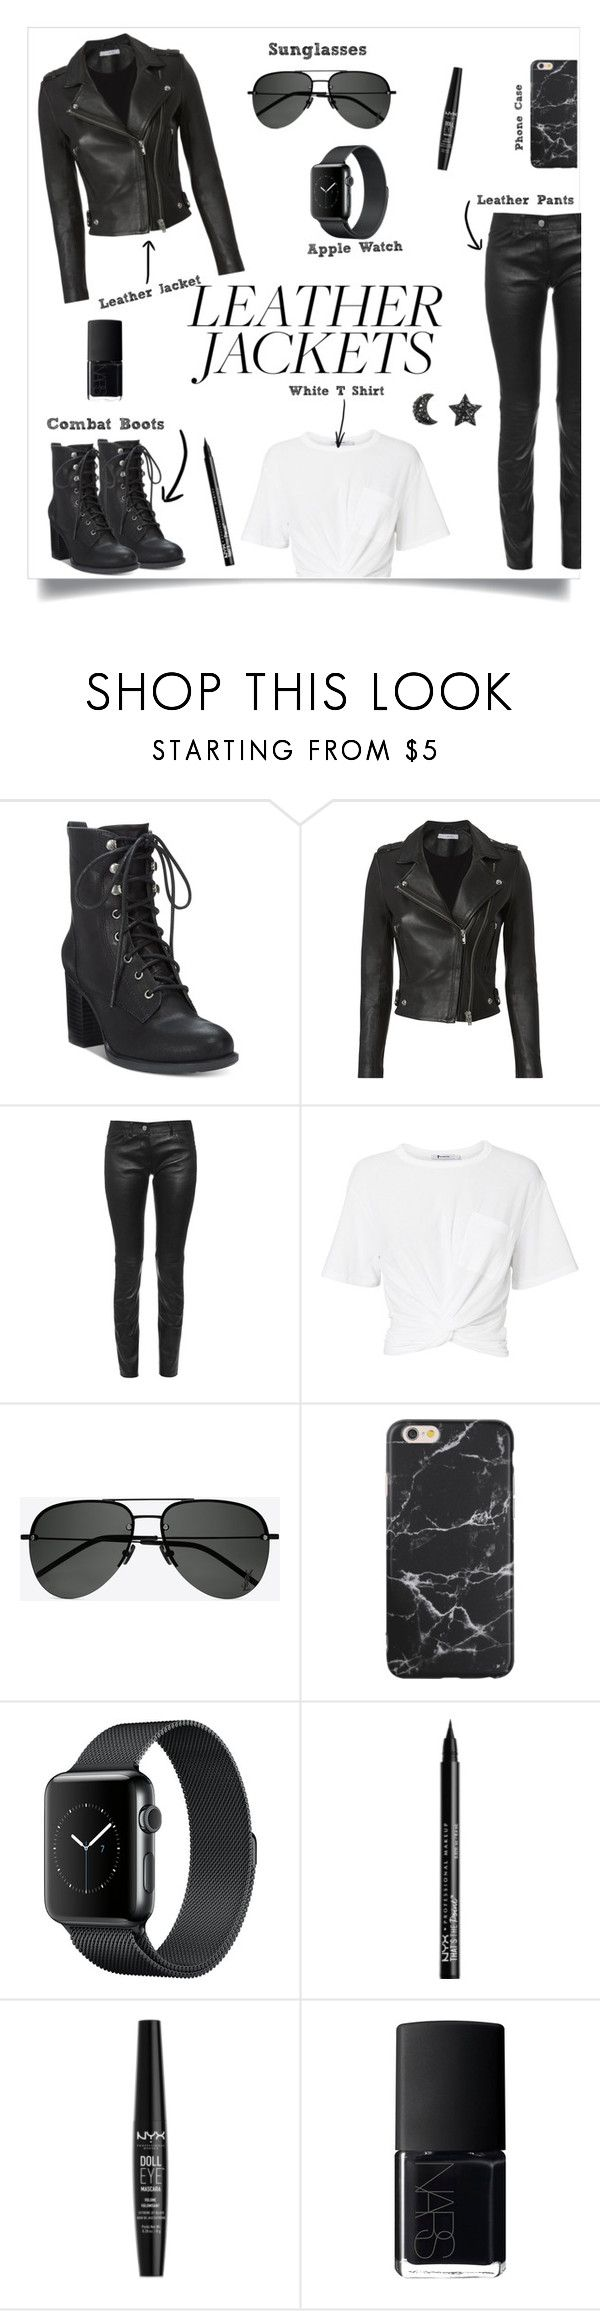 """""""Leather Jacket"""" by bluejasmine360 ❤ liked on Polyvore featuring American Rag Cie, IRO, Balenciaga, T By Alexander Wang, Yves Saint Laurent, NYX, NARS Cosmetics, leatherjacket and leatherjackets"""